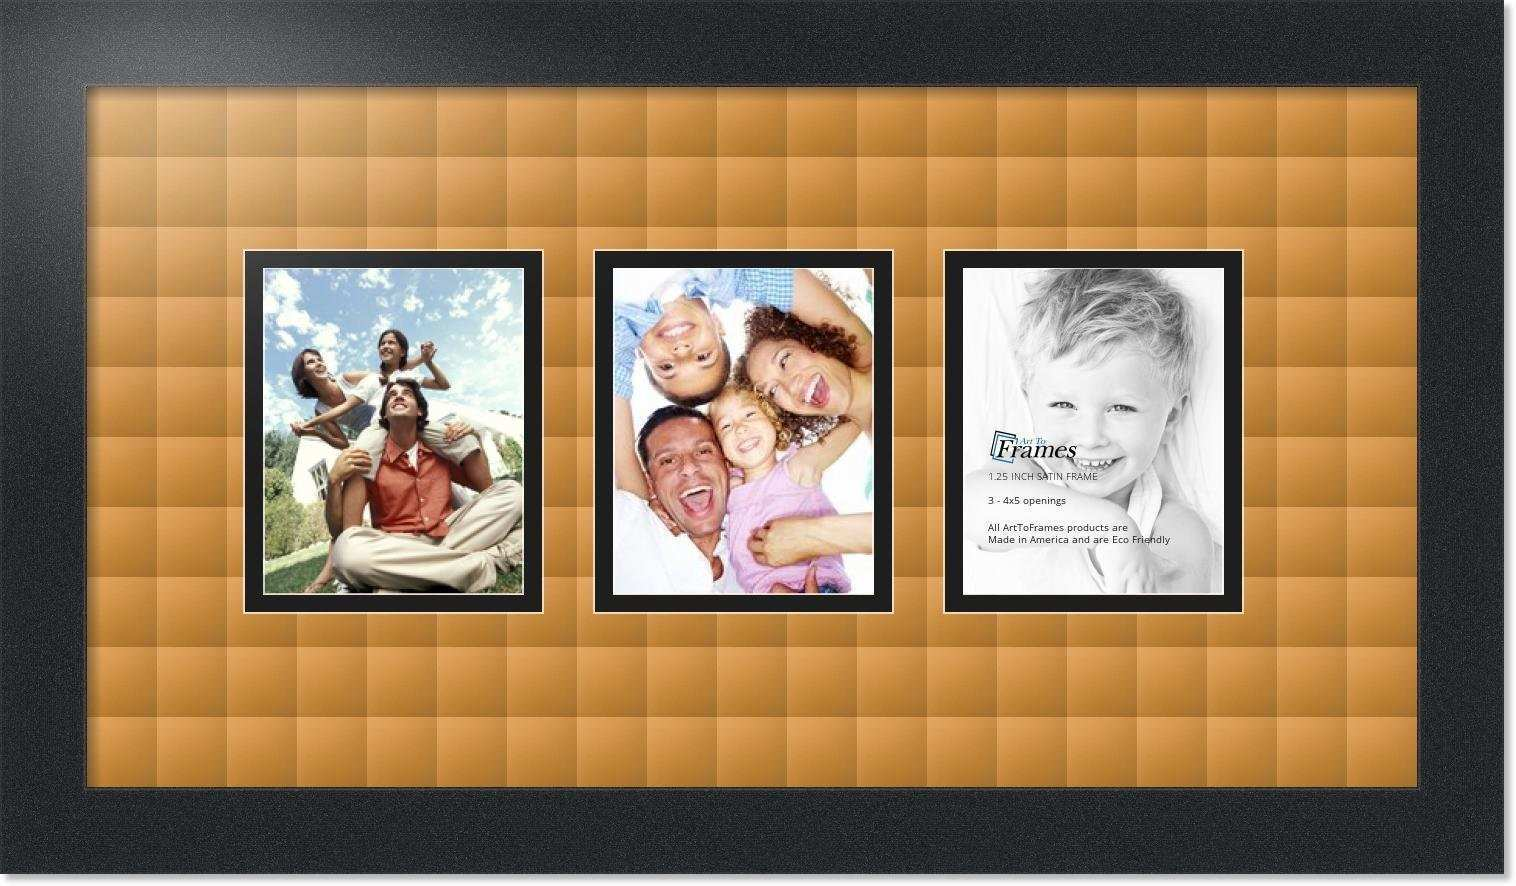 4x5 Picture Frames New Arttoframes Collage Mat Picture Frame 3 4x5